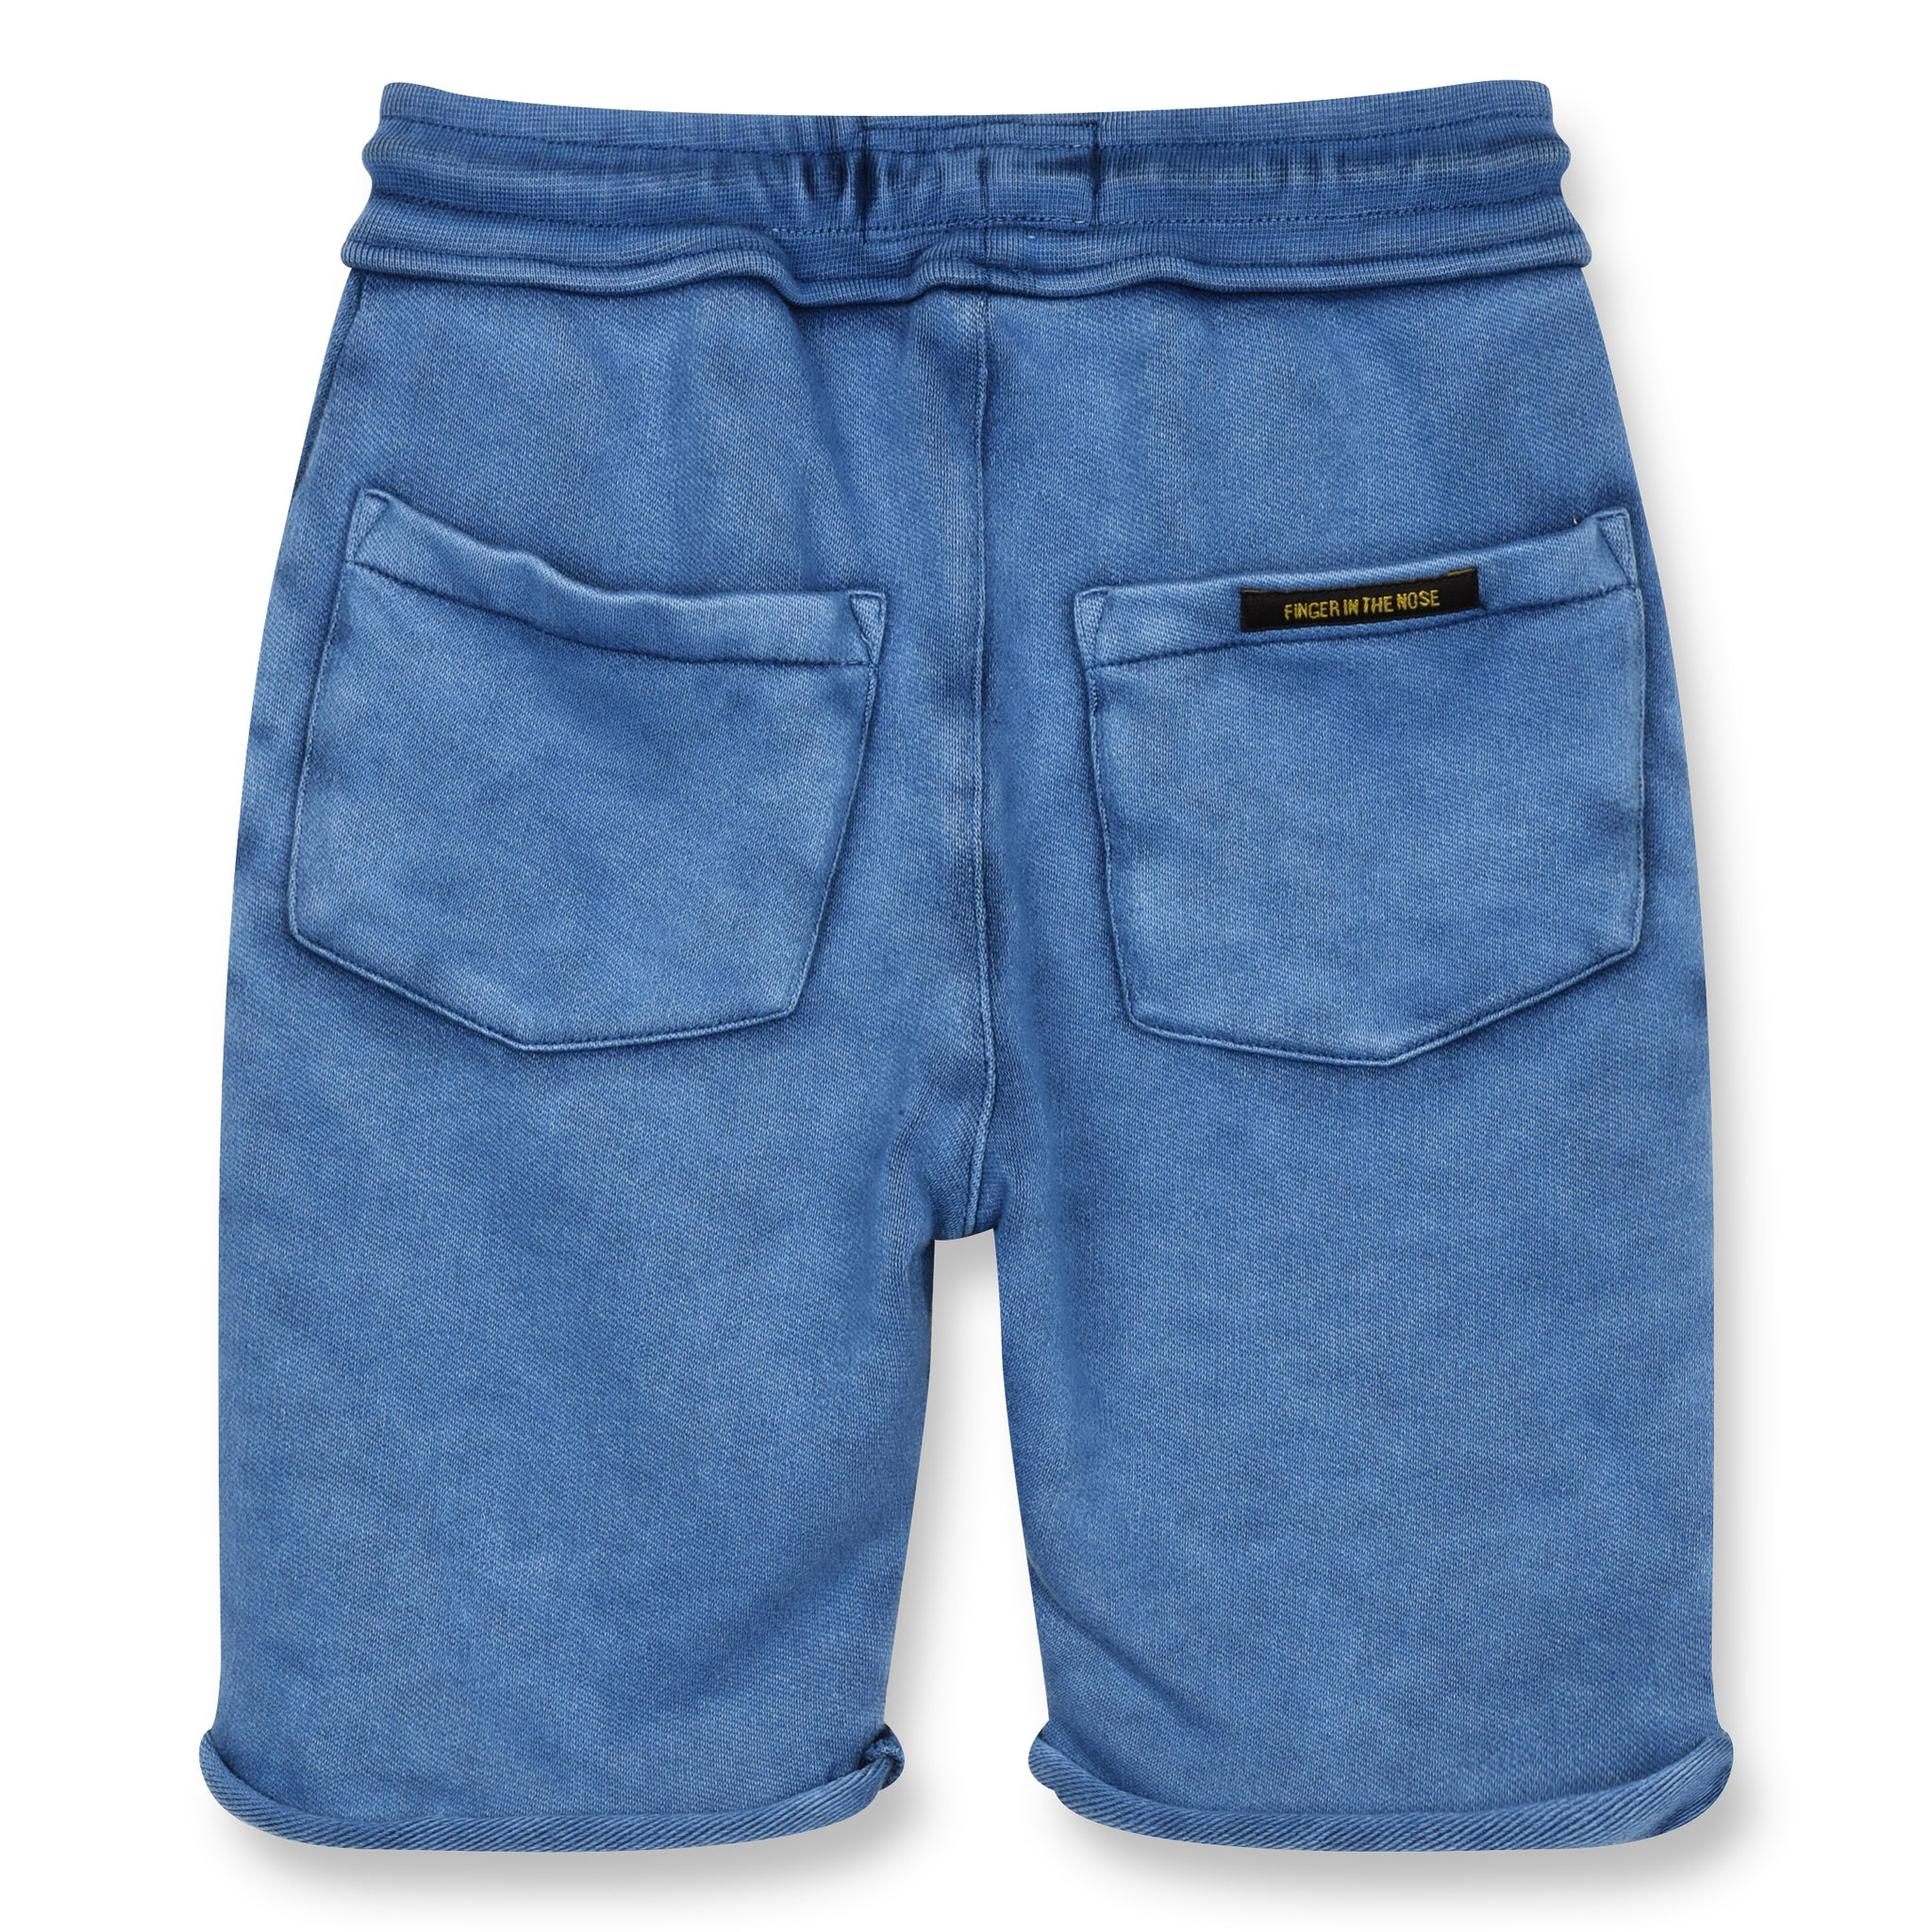 GROUNDED Kraft Blue - Comfort Fit Bermudas 2